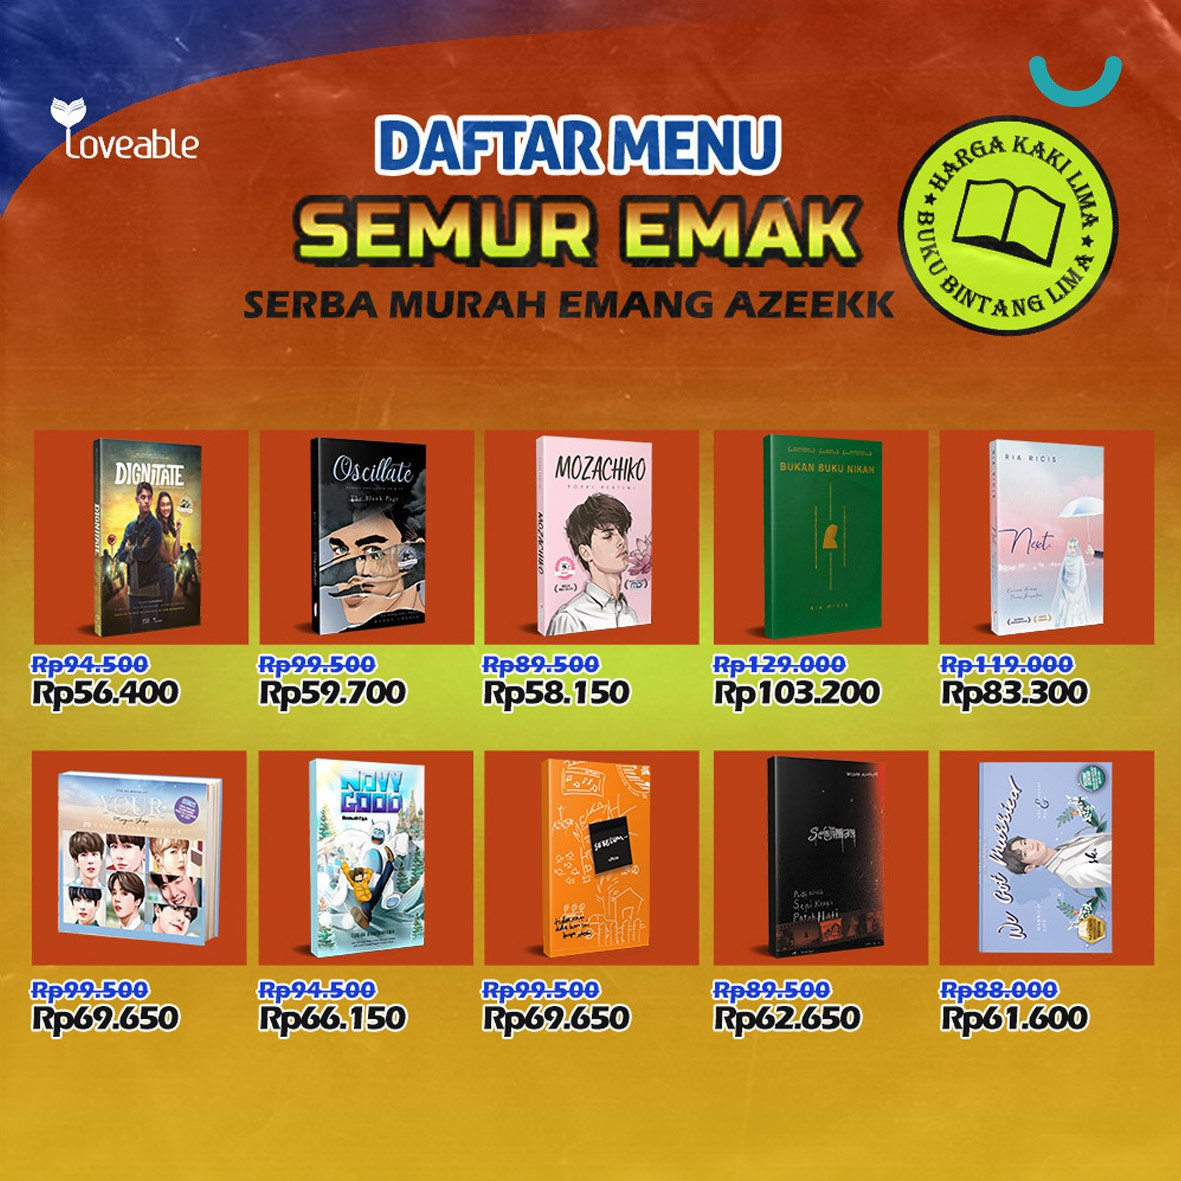 Sale buku terbitan Liveable up diskon sampai 60% pemesanan bisa klik https://t.co/XCTeR7gbrr ☺ https://t.co/Iq8rk7ZEBf